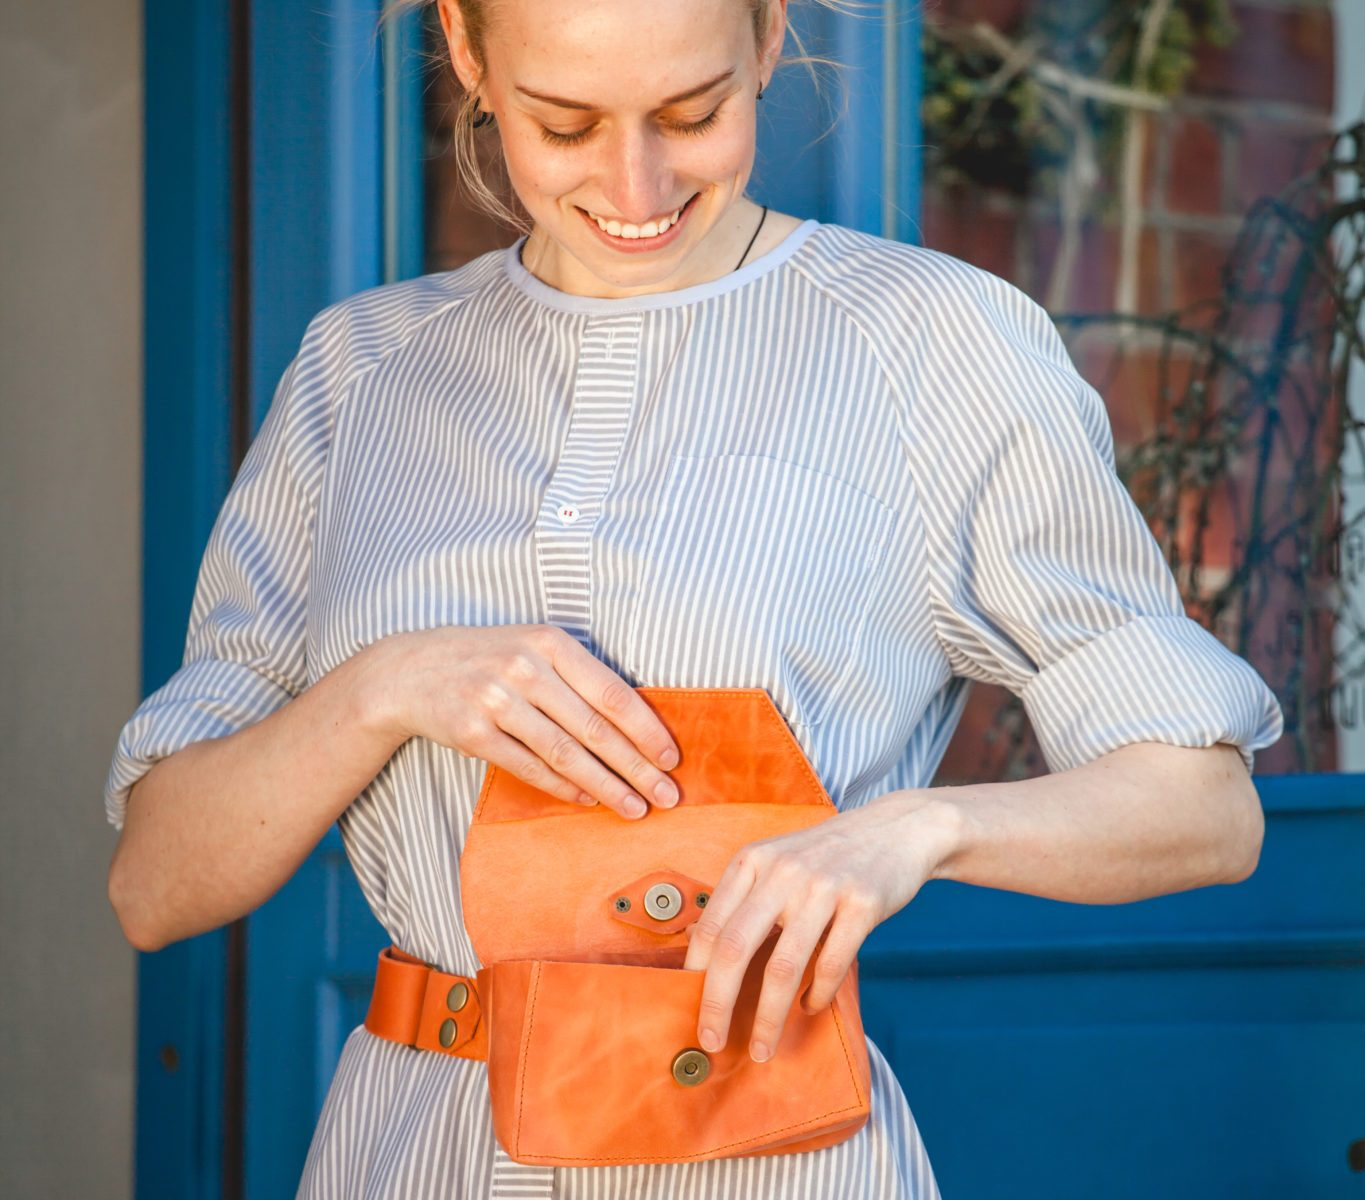 Belt bags for waitresses by designer Maarja Sööt. Photo by Jaanus Jagomägi.